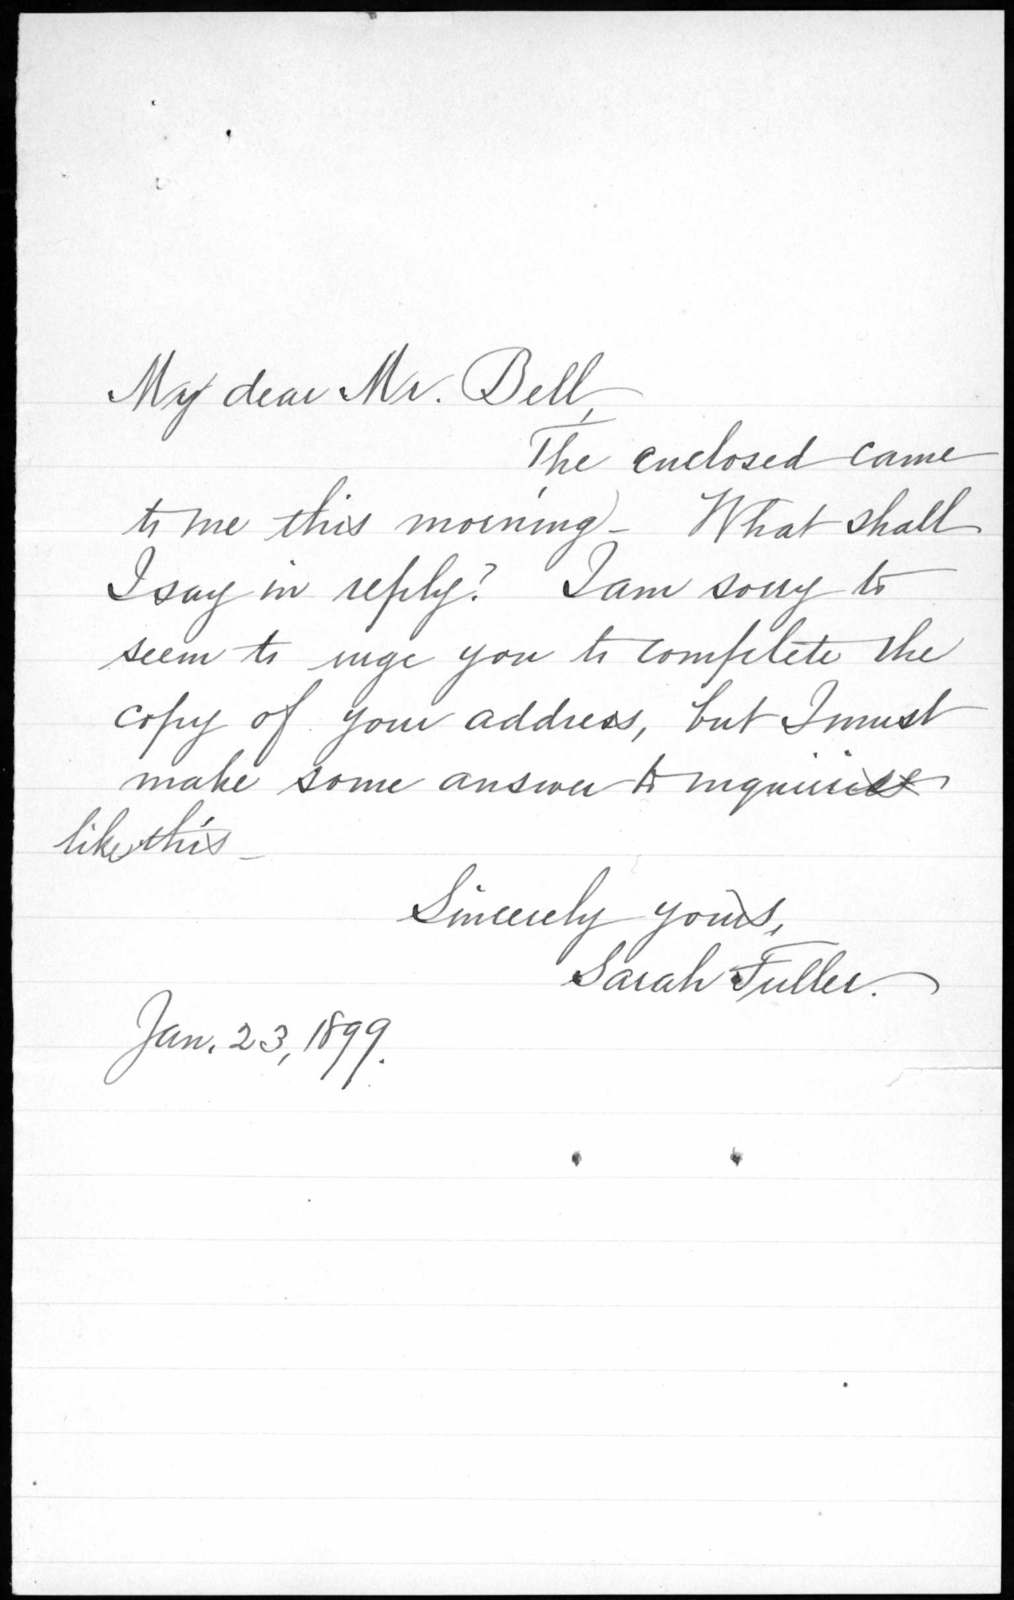 Letter from Sarah Fuller to Alexander Graham Bell, January 23, 1899